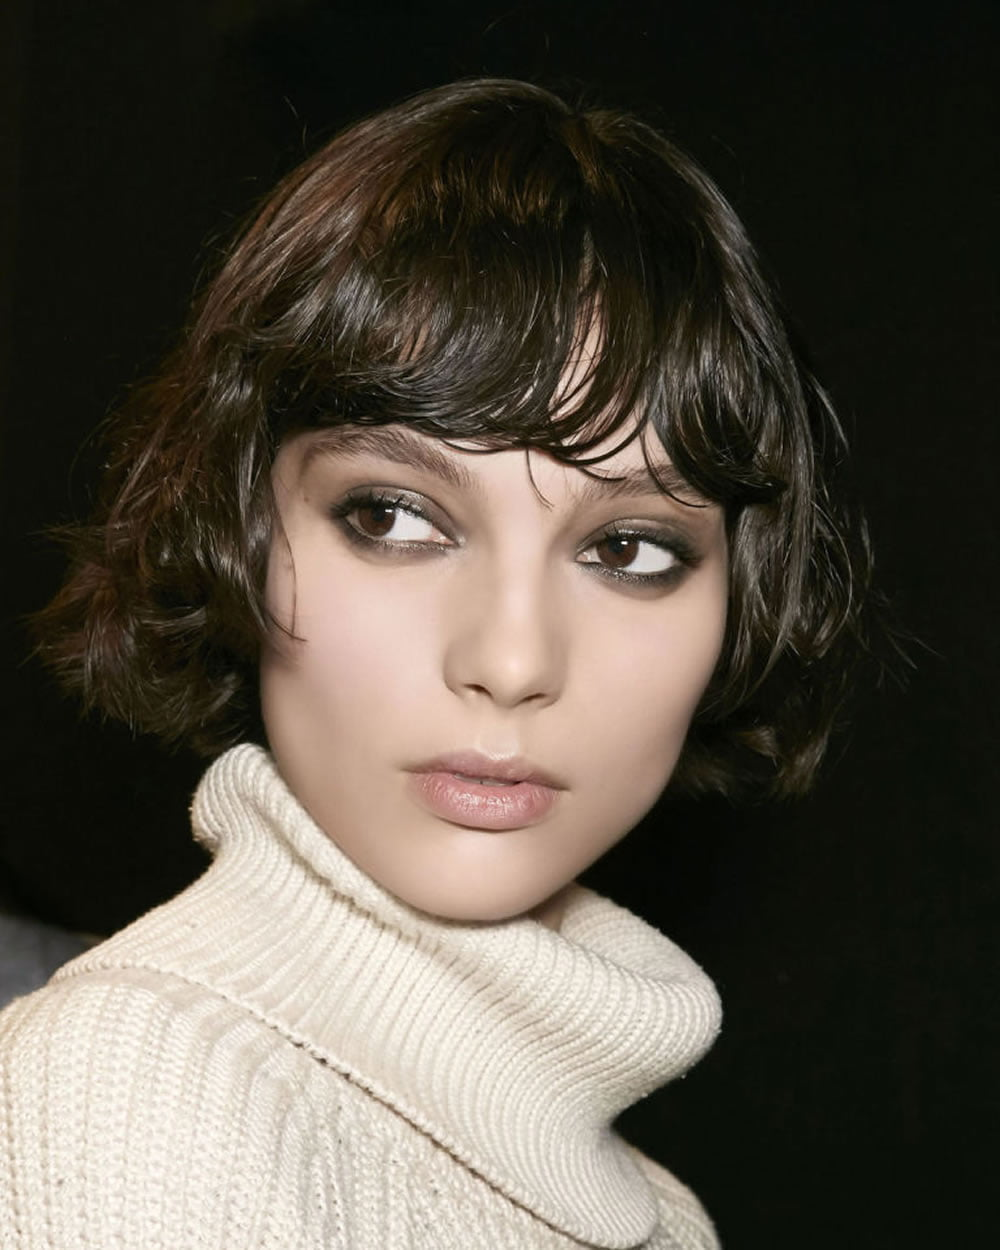 The Latest 28 Ravishing Short Hairstyles and Colors You can Try for 2019 - Page 5 - HAIRSTYLES